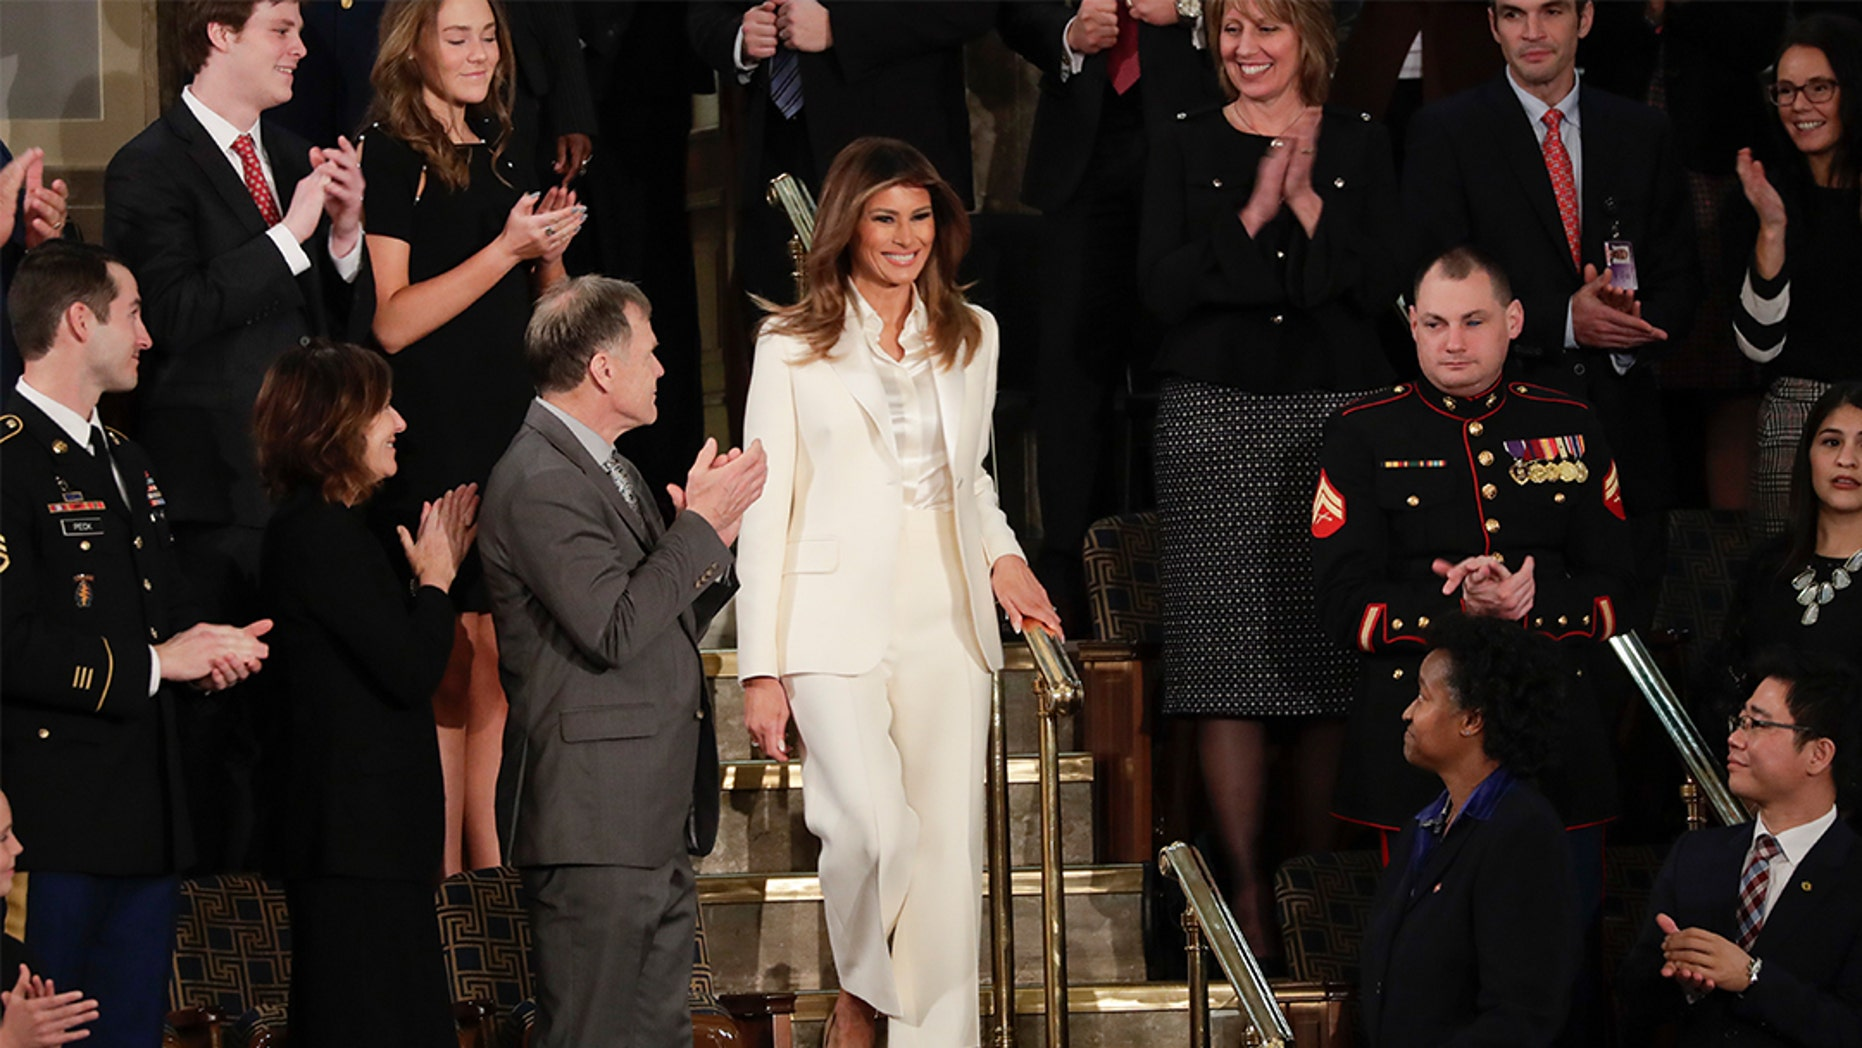 First Lady Melania Trump was all smiles as she arrived for the State of the Union.